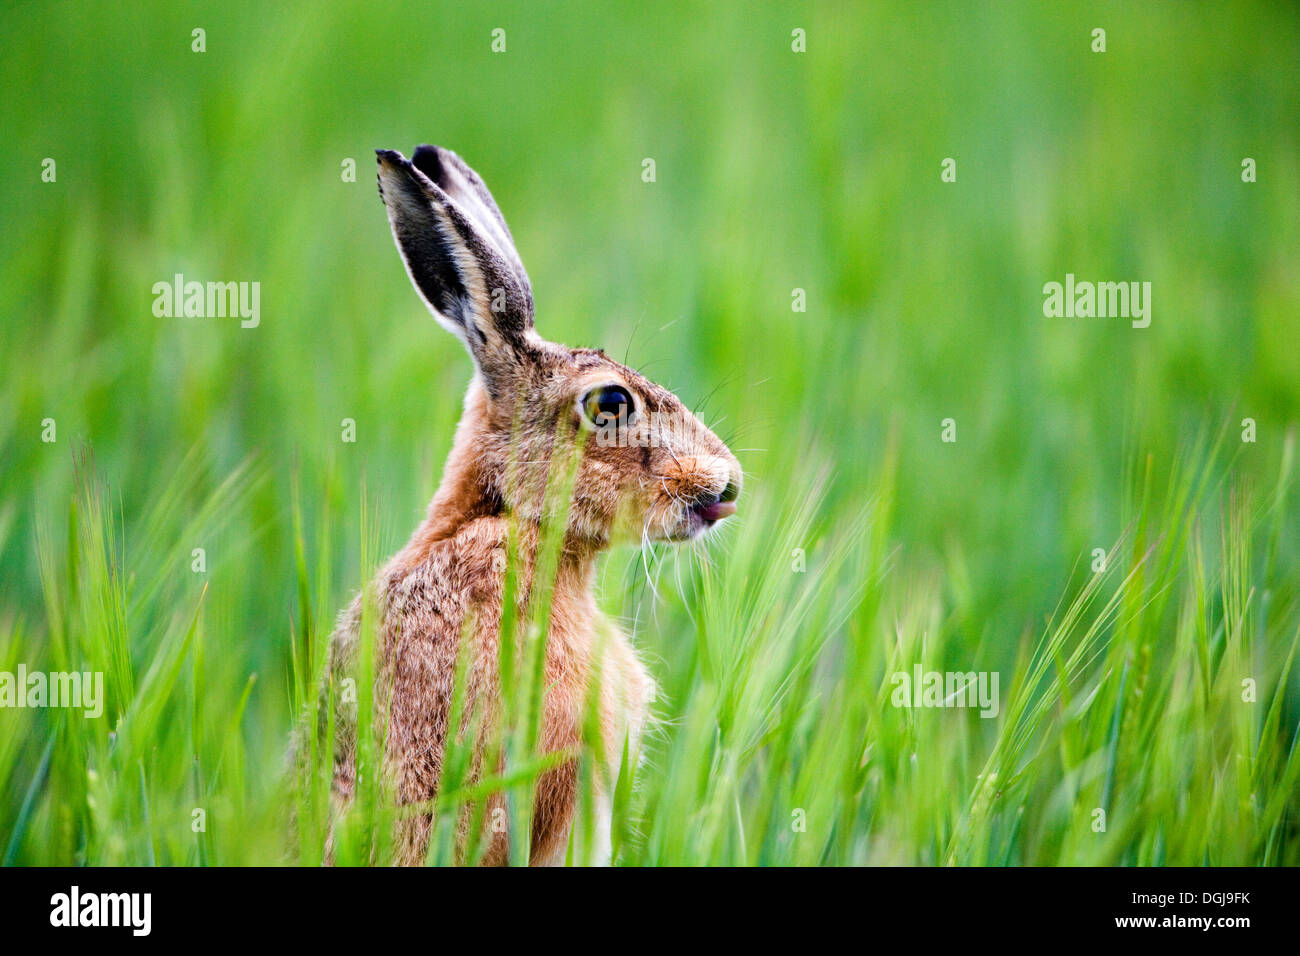 A brown hare in a meadow. - Stock Image